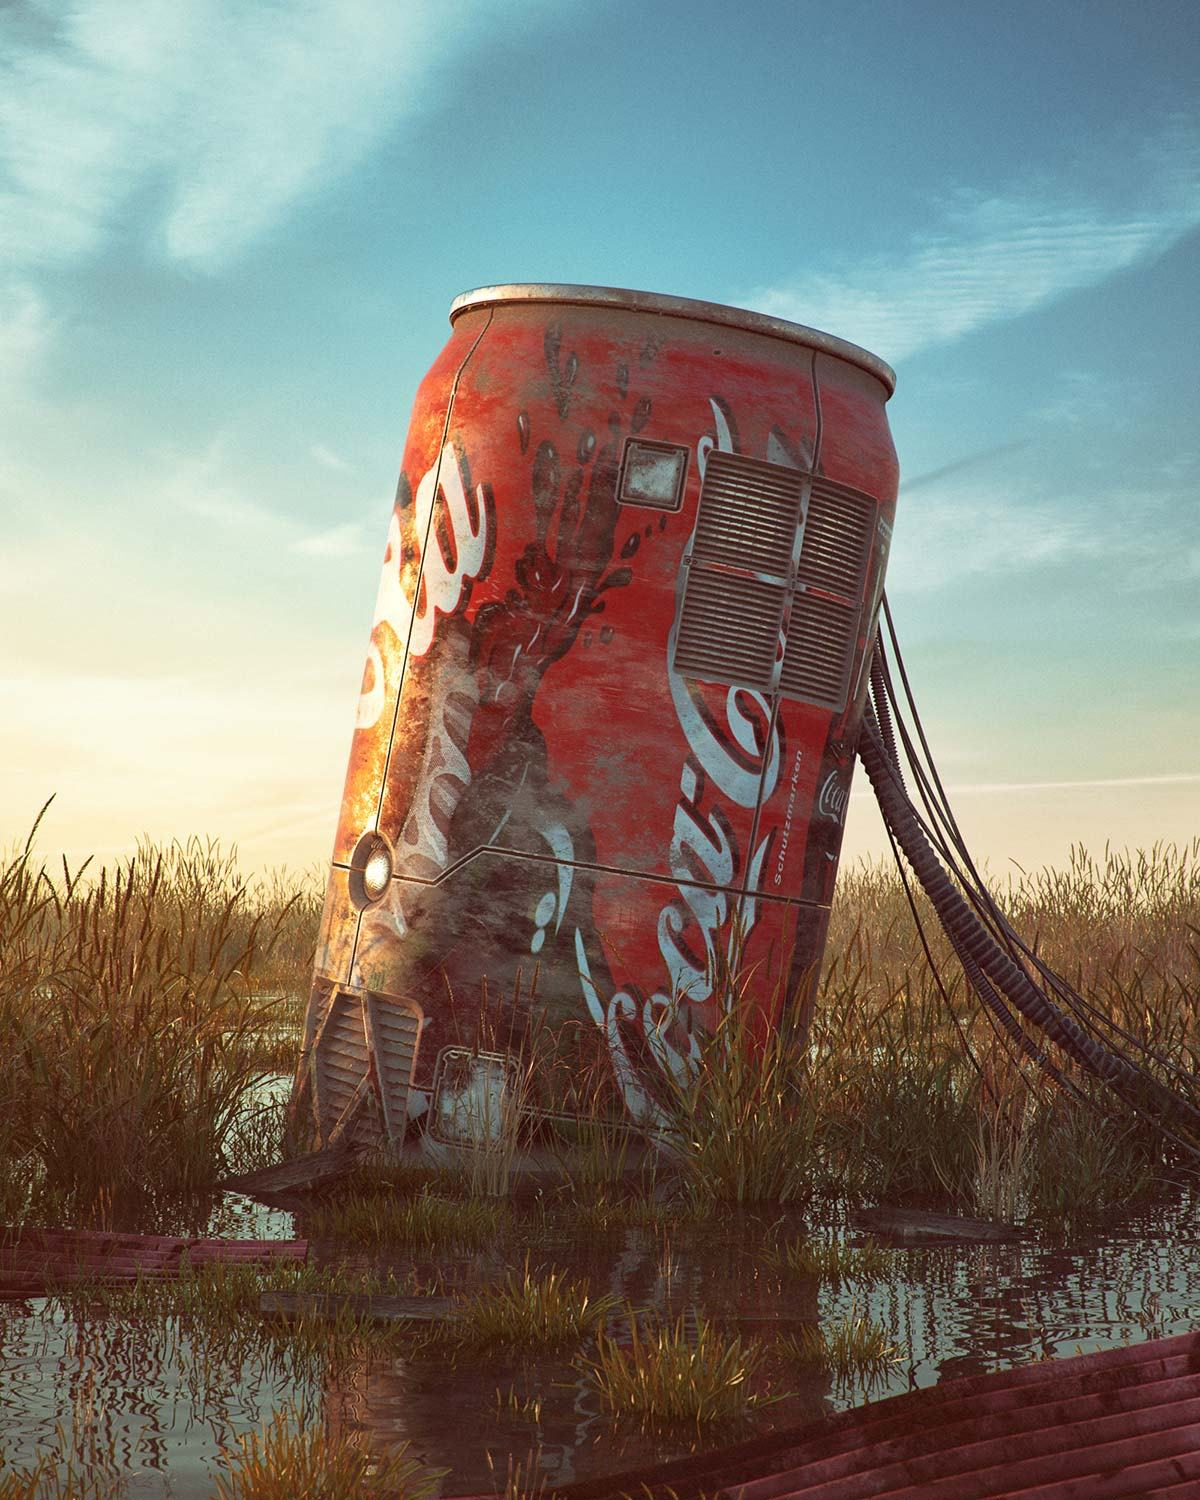 pop-culture-dystopia-by-filip-hodas-5